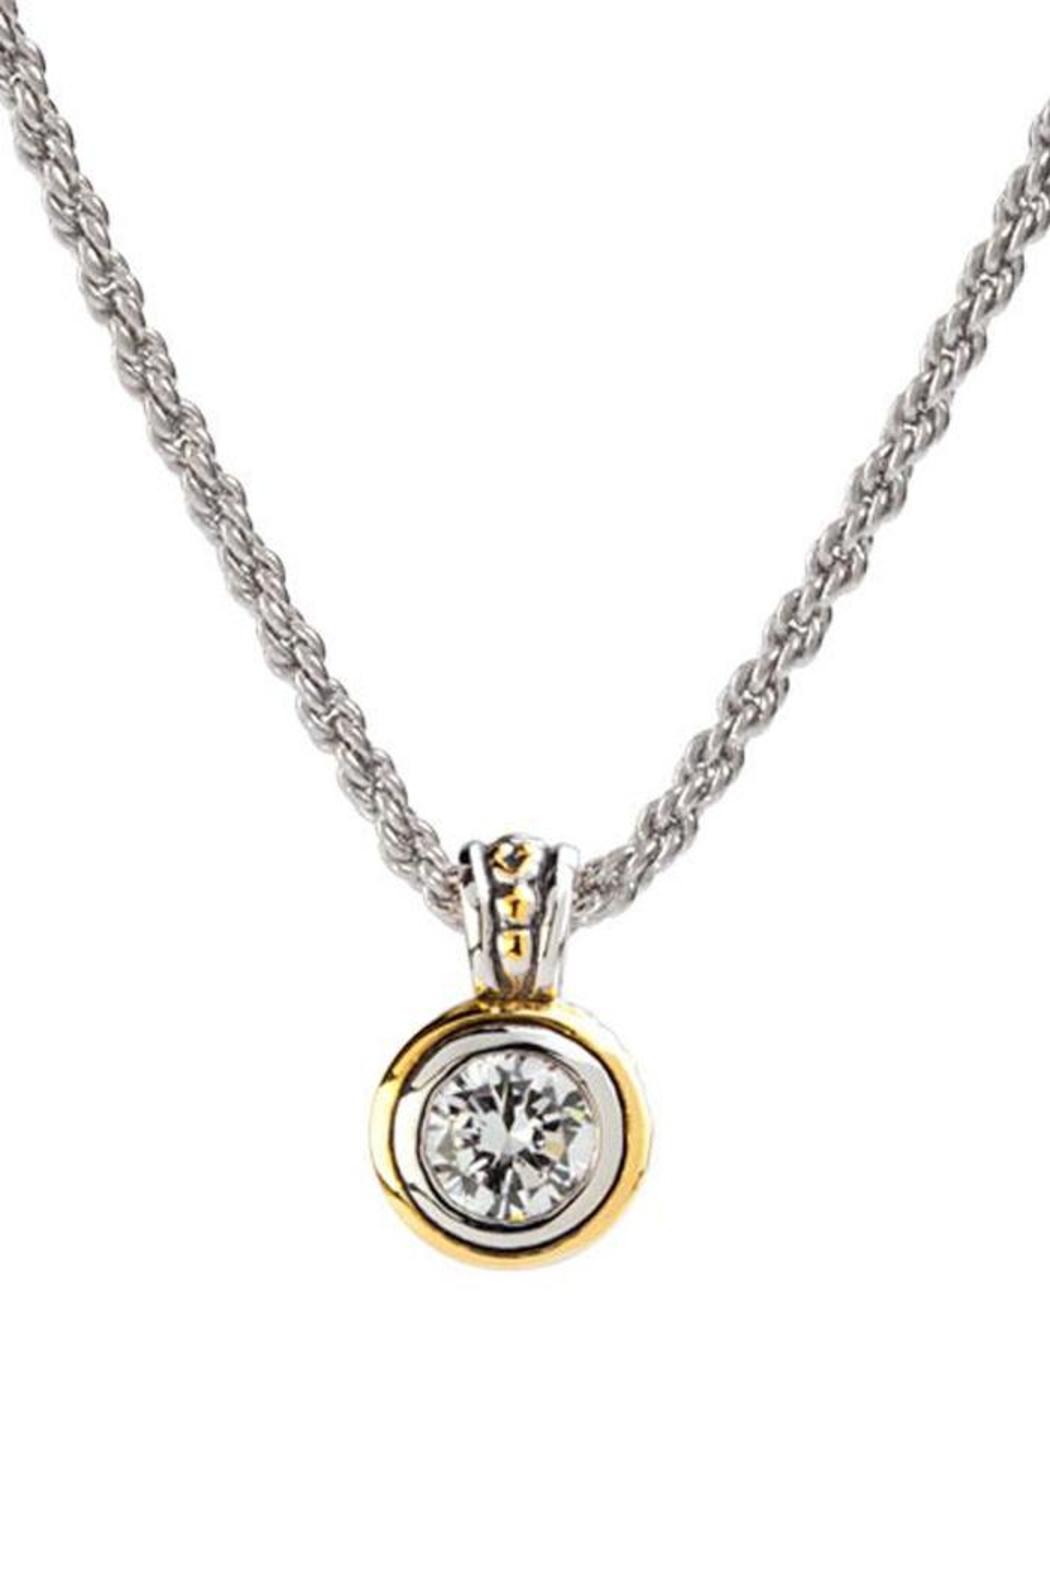 JOHN MEDEIROS Beijos 8mm-Cz-Bezel Set-Pendant-Necklace - Main Image